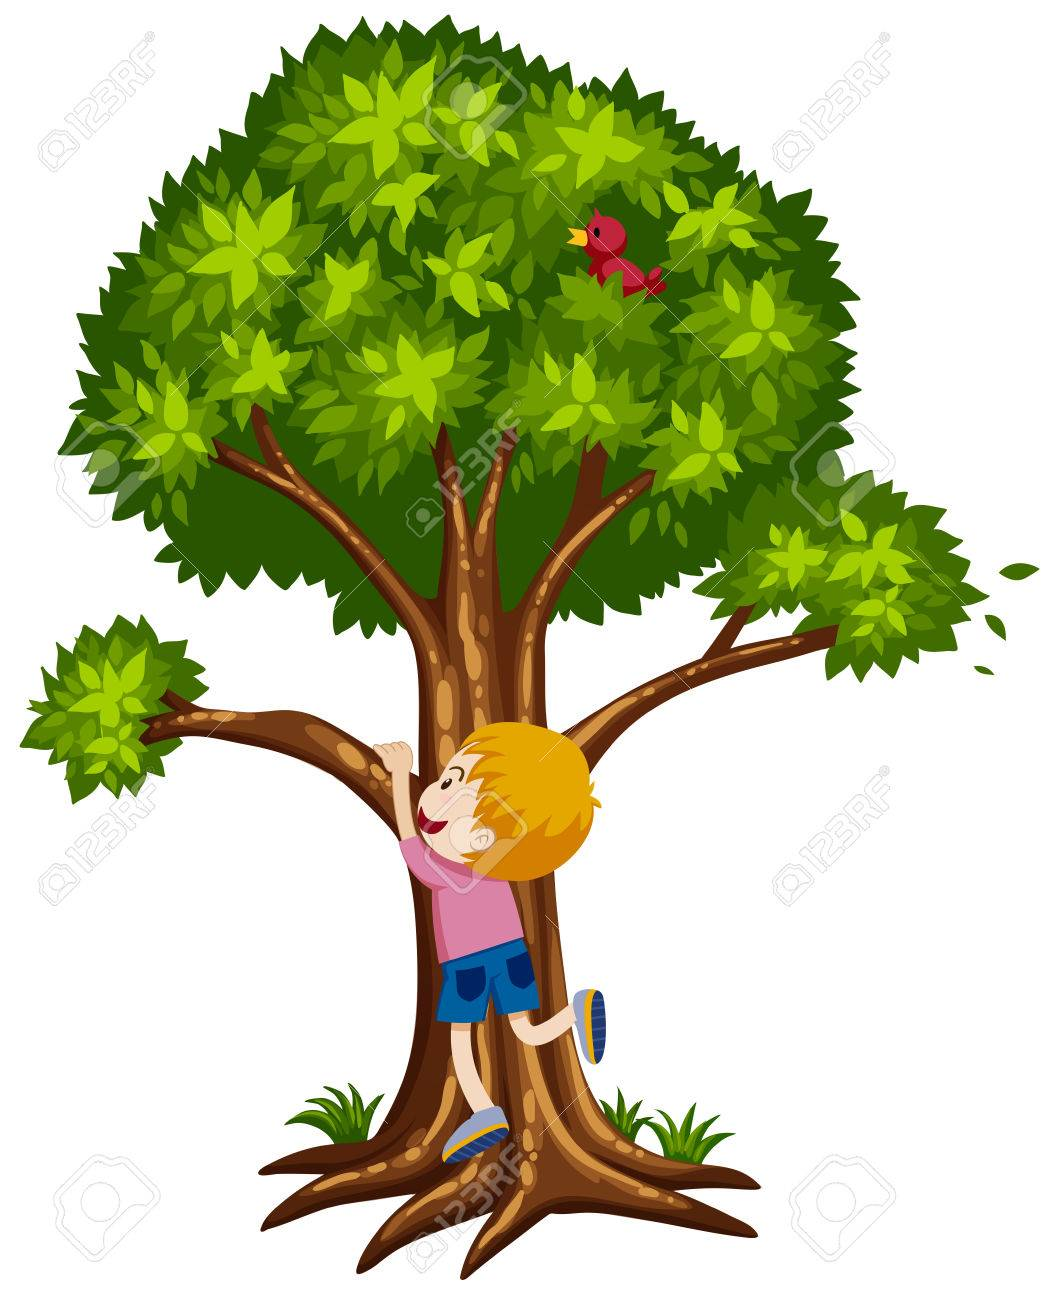 Little Boy Climbing Up The Tree Illustration Royalty Free Cliparts